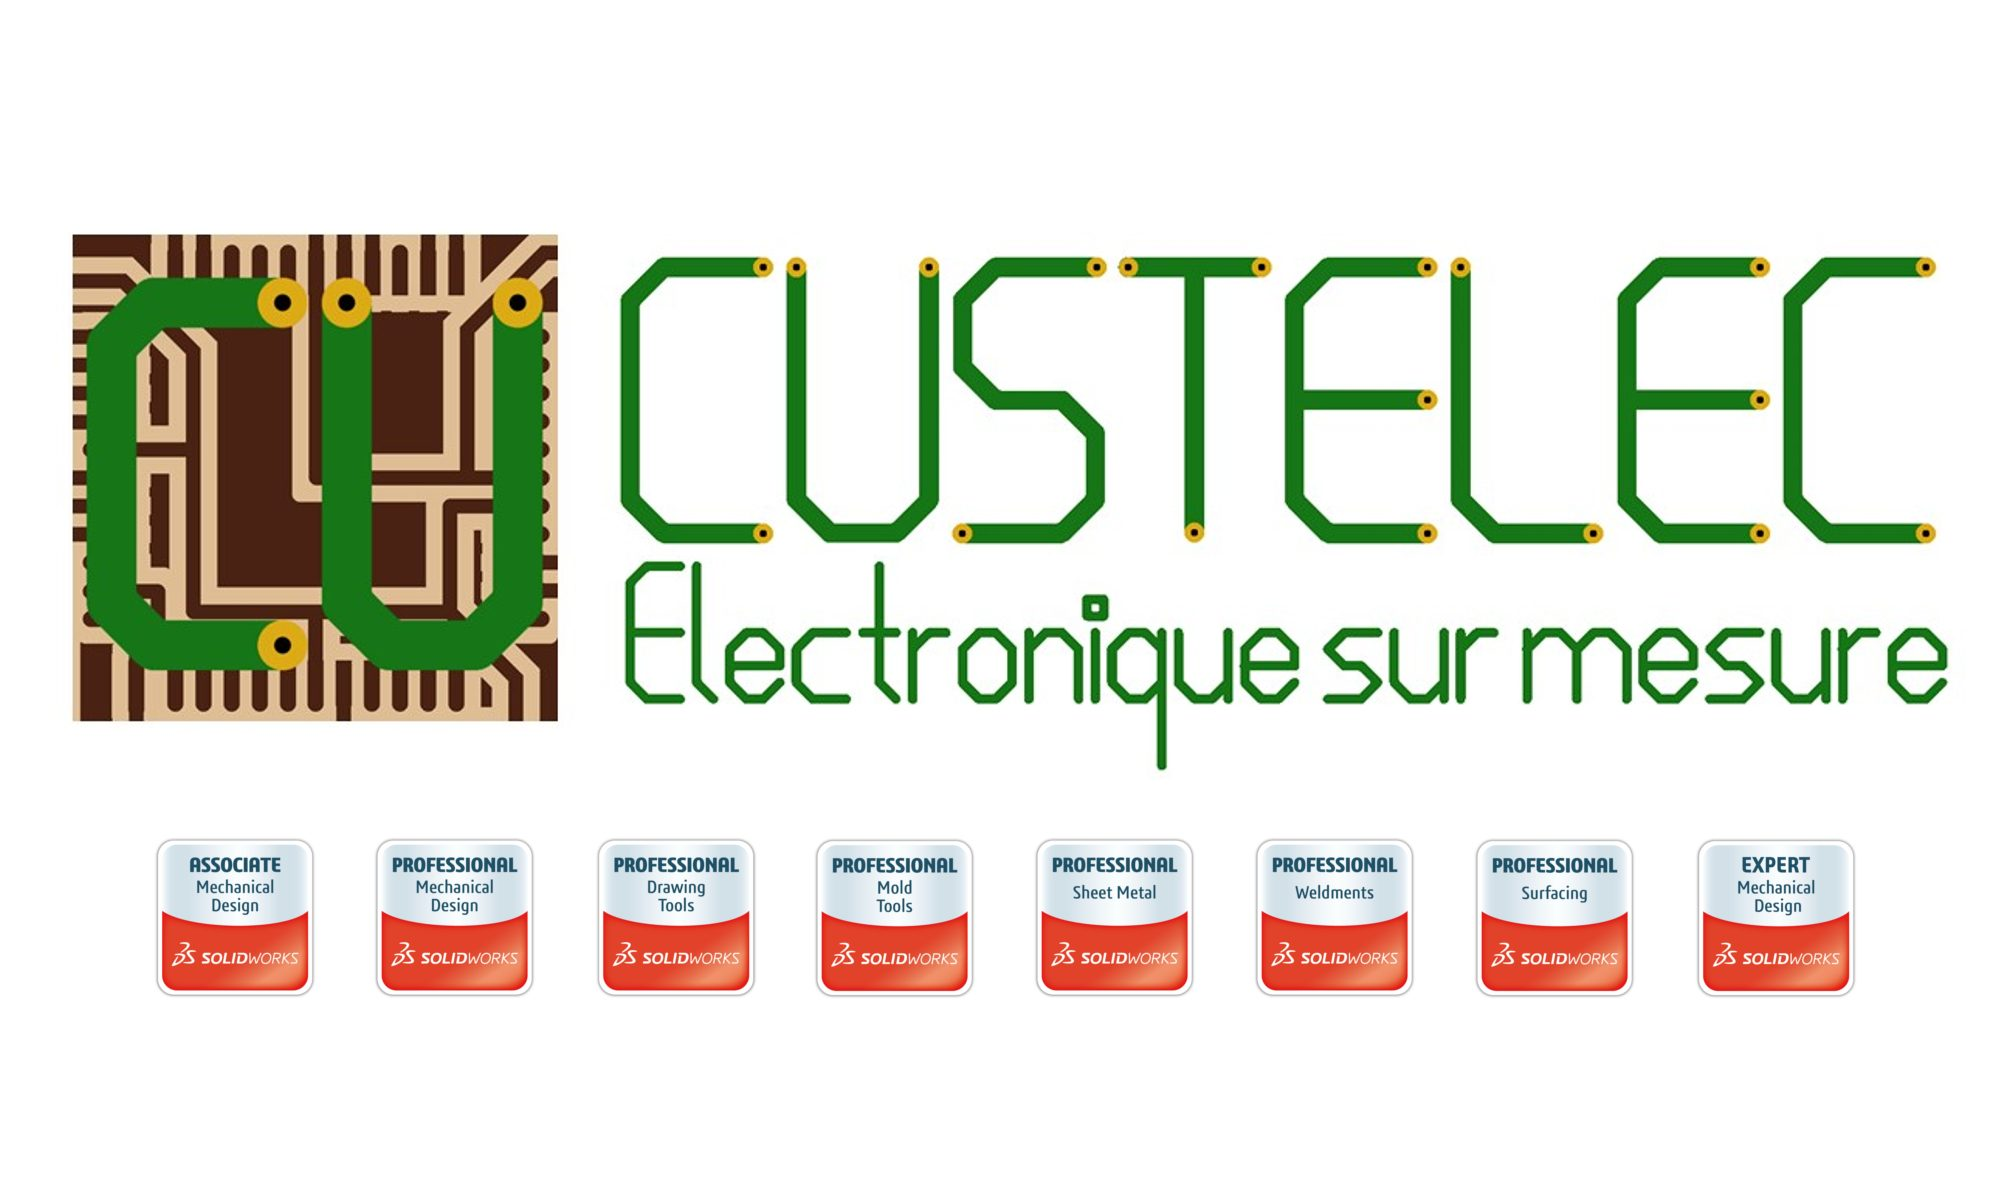 Custelec